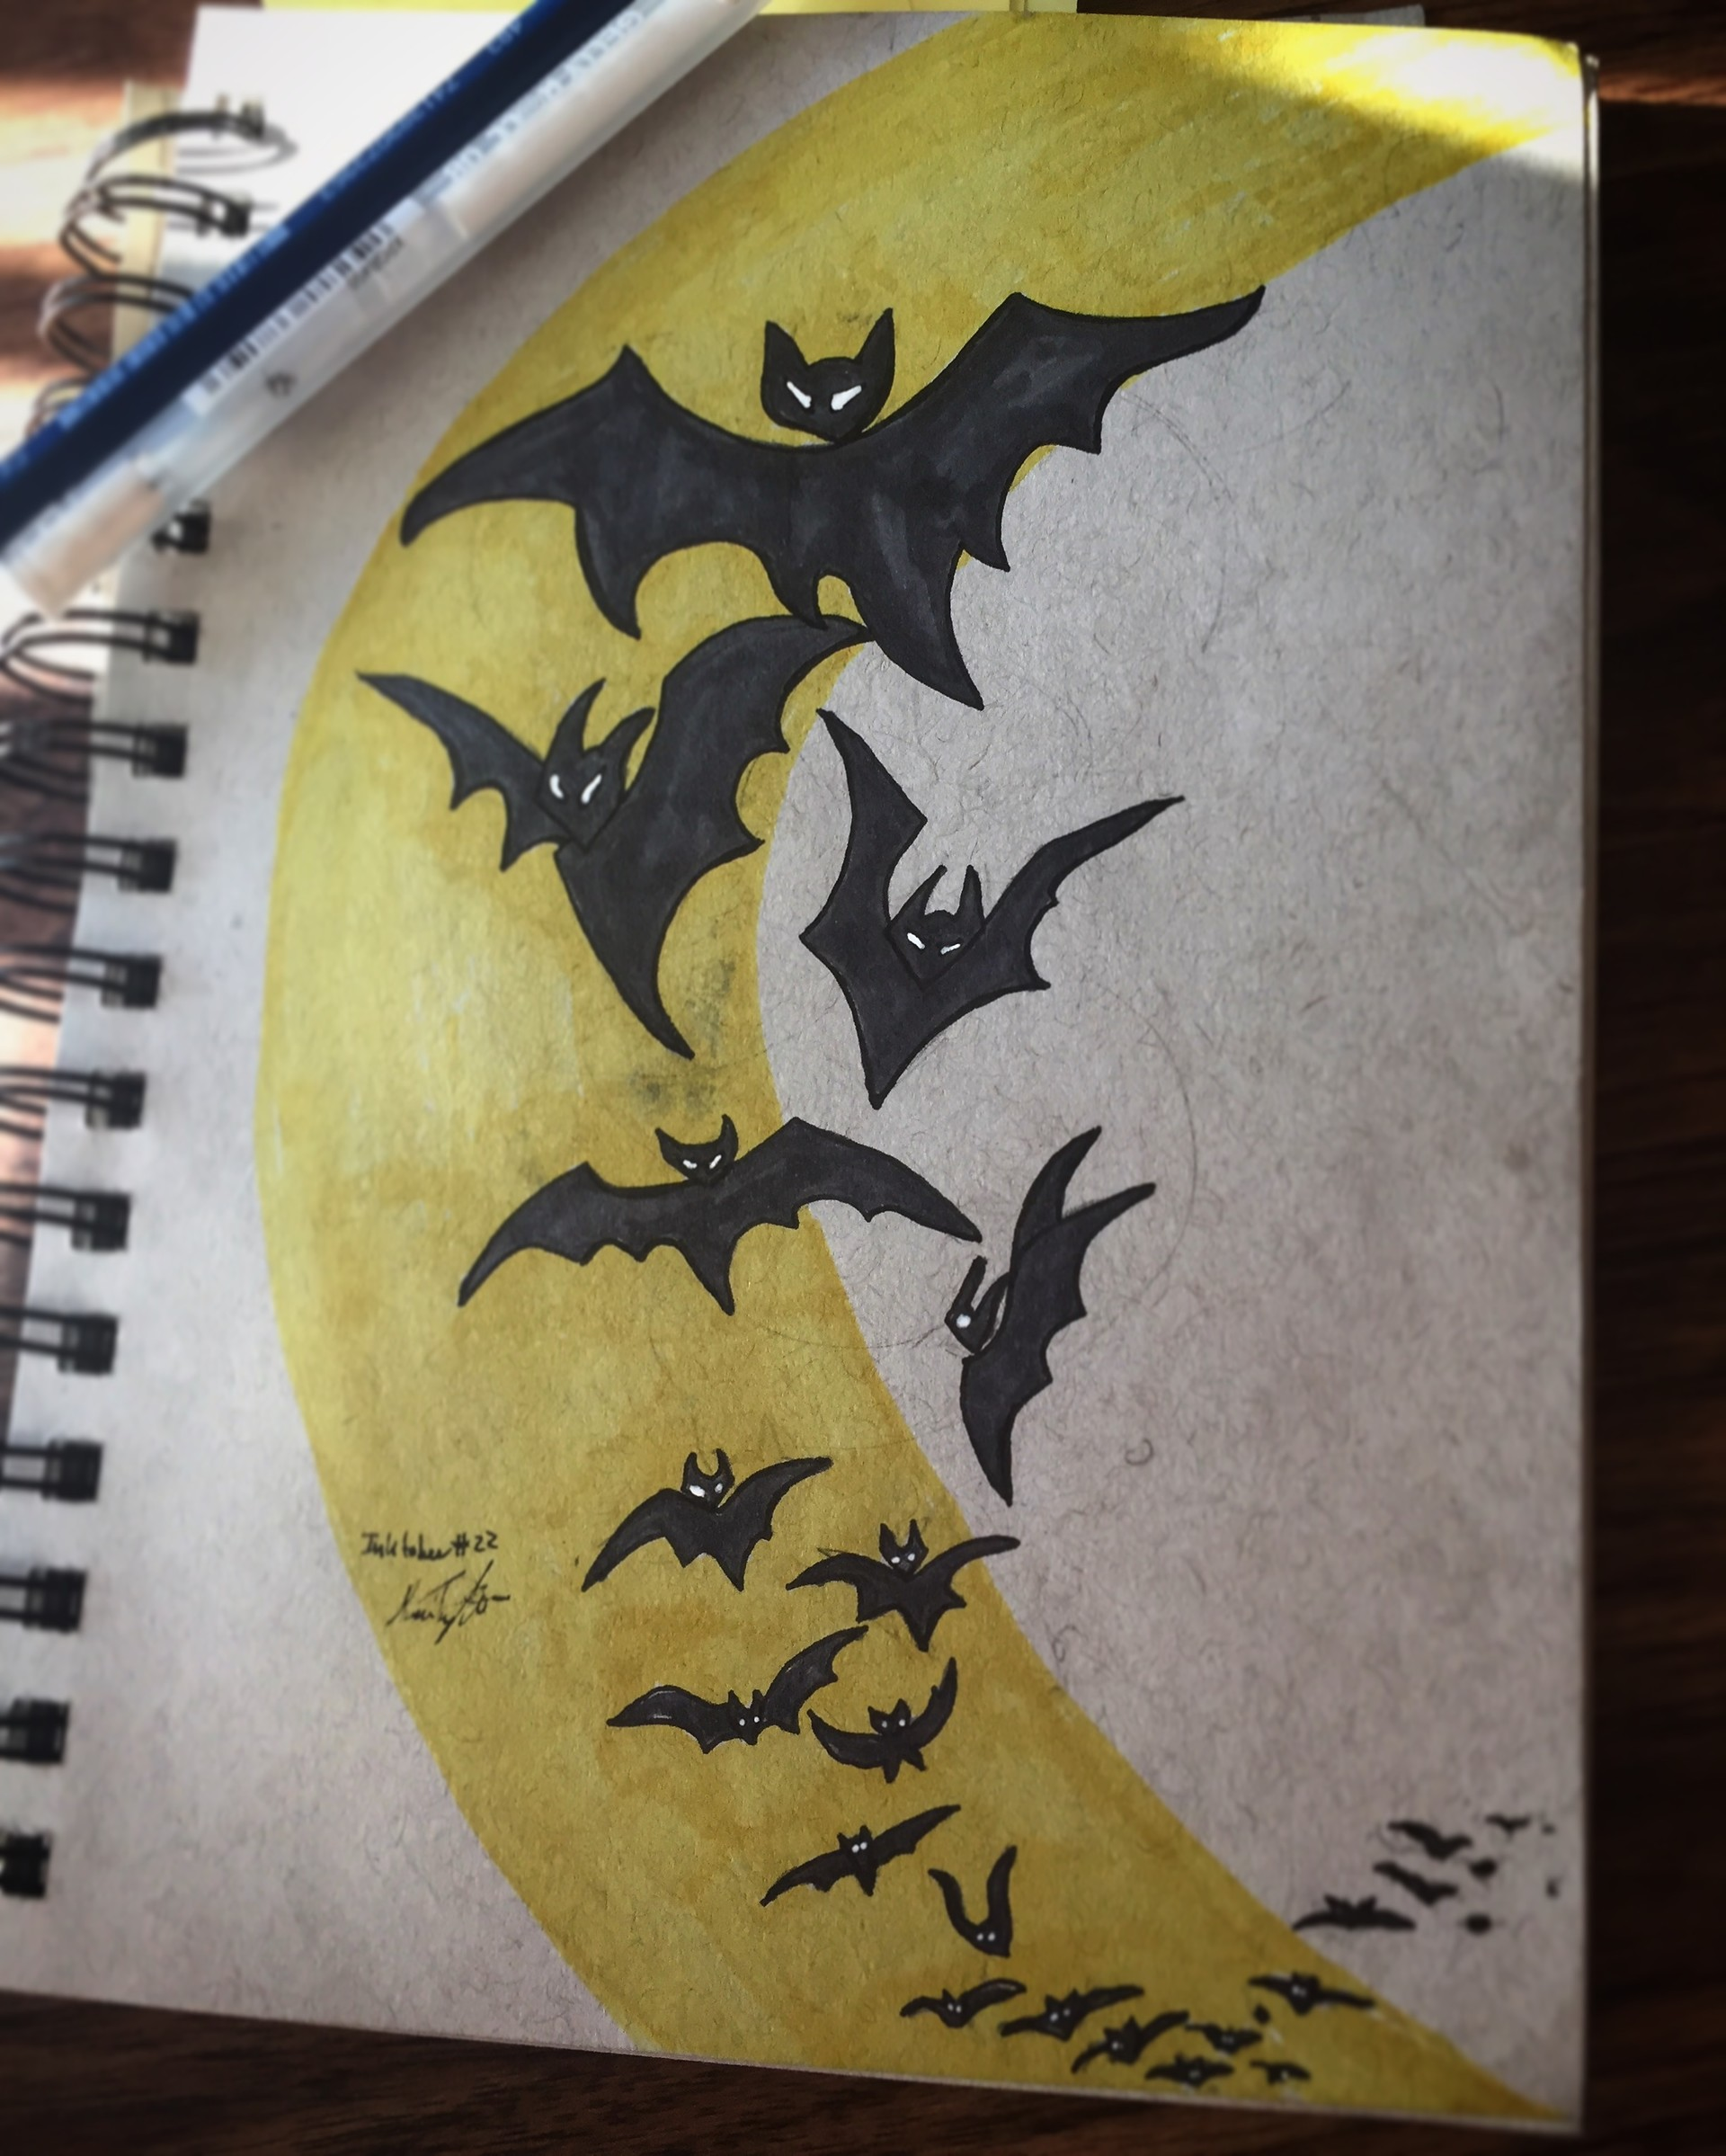 Some random trail of bats sketch